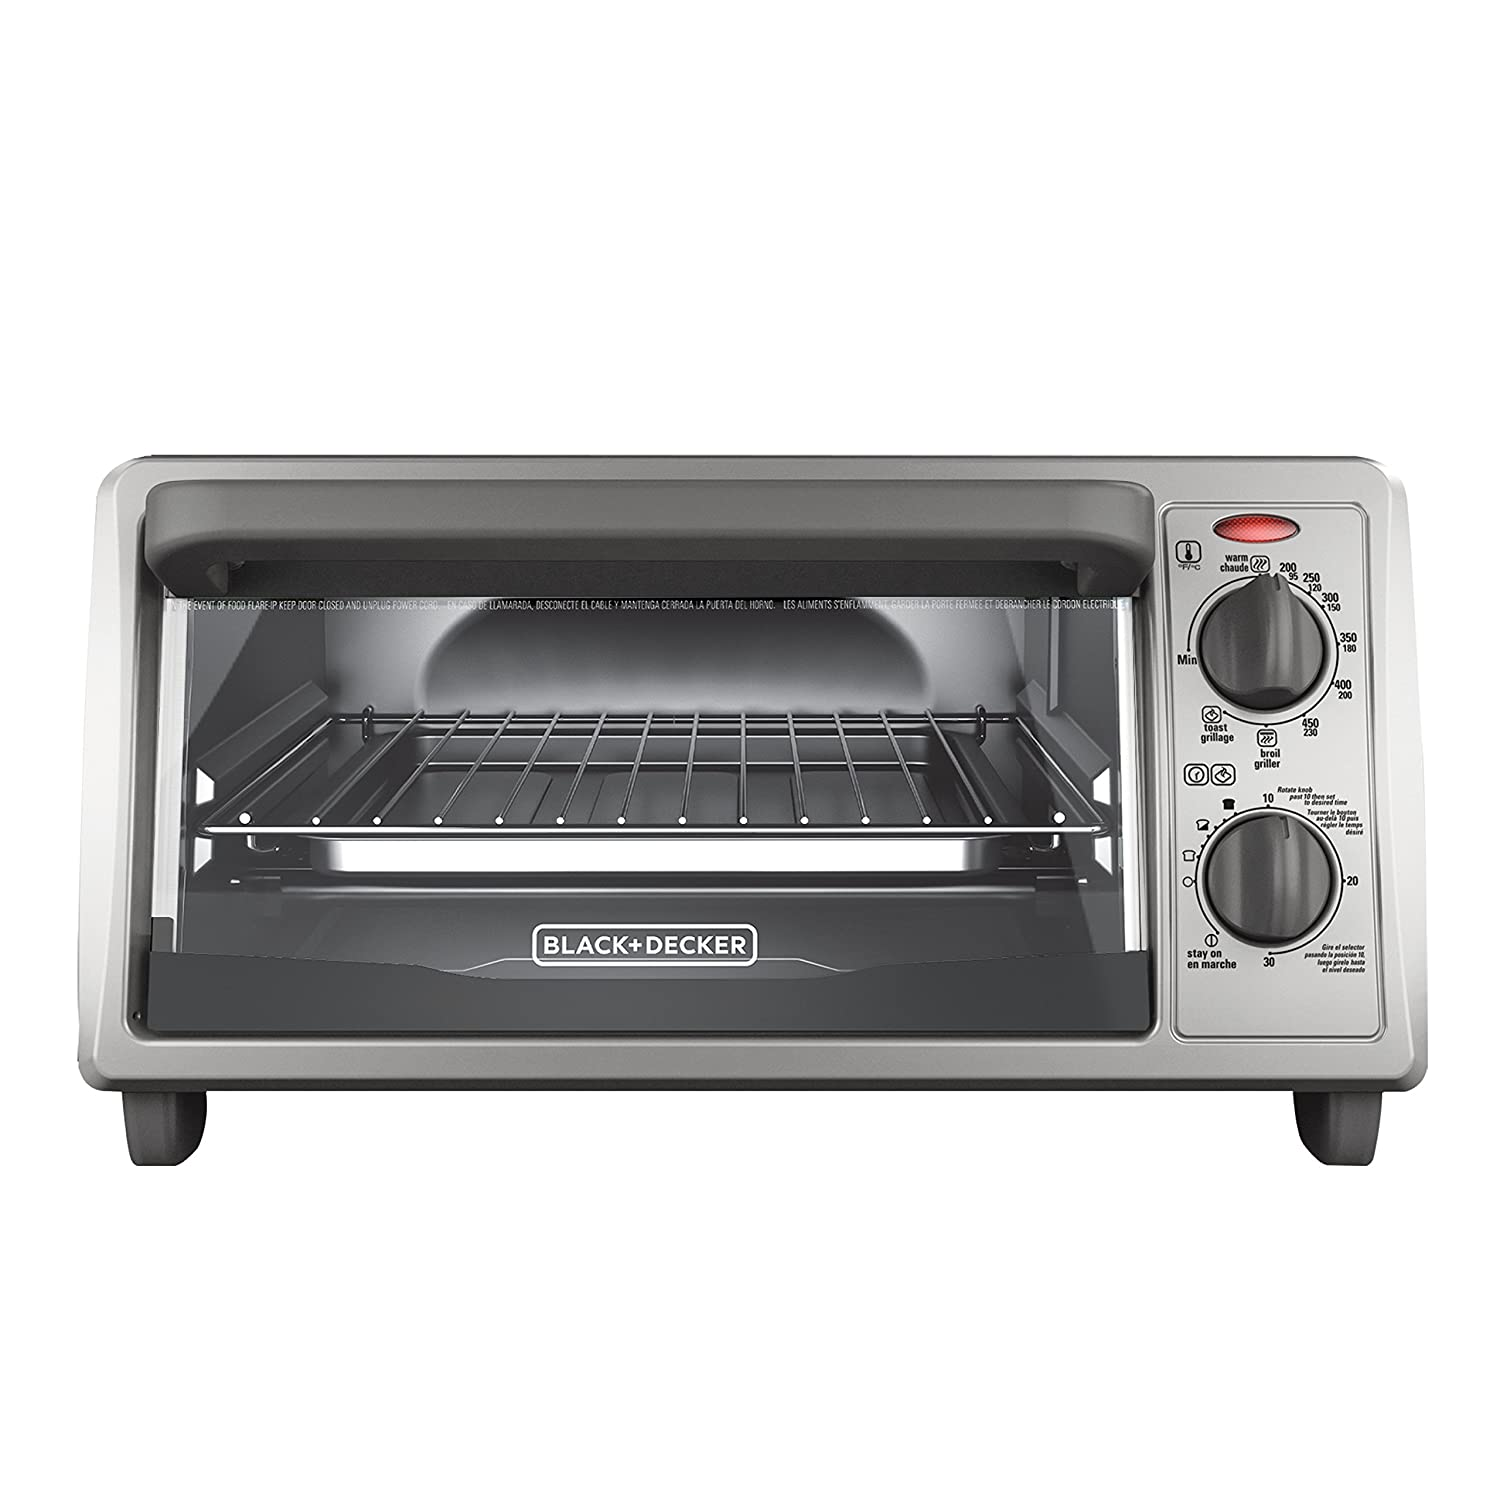 Black & Decker Toaster Oven TO1322SBD